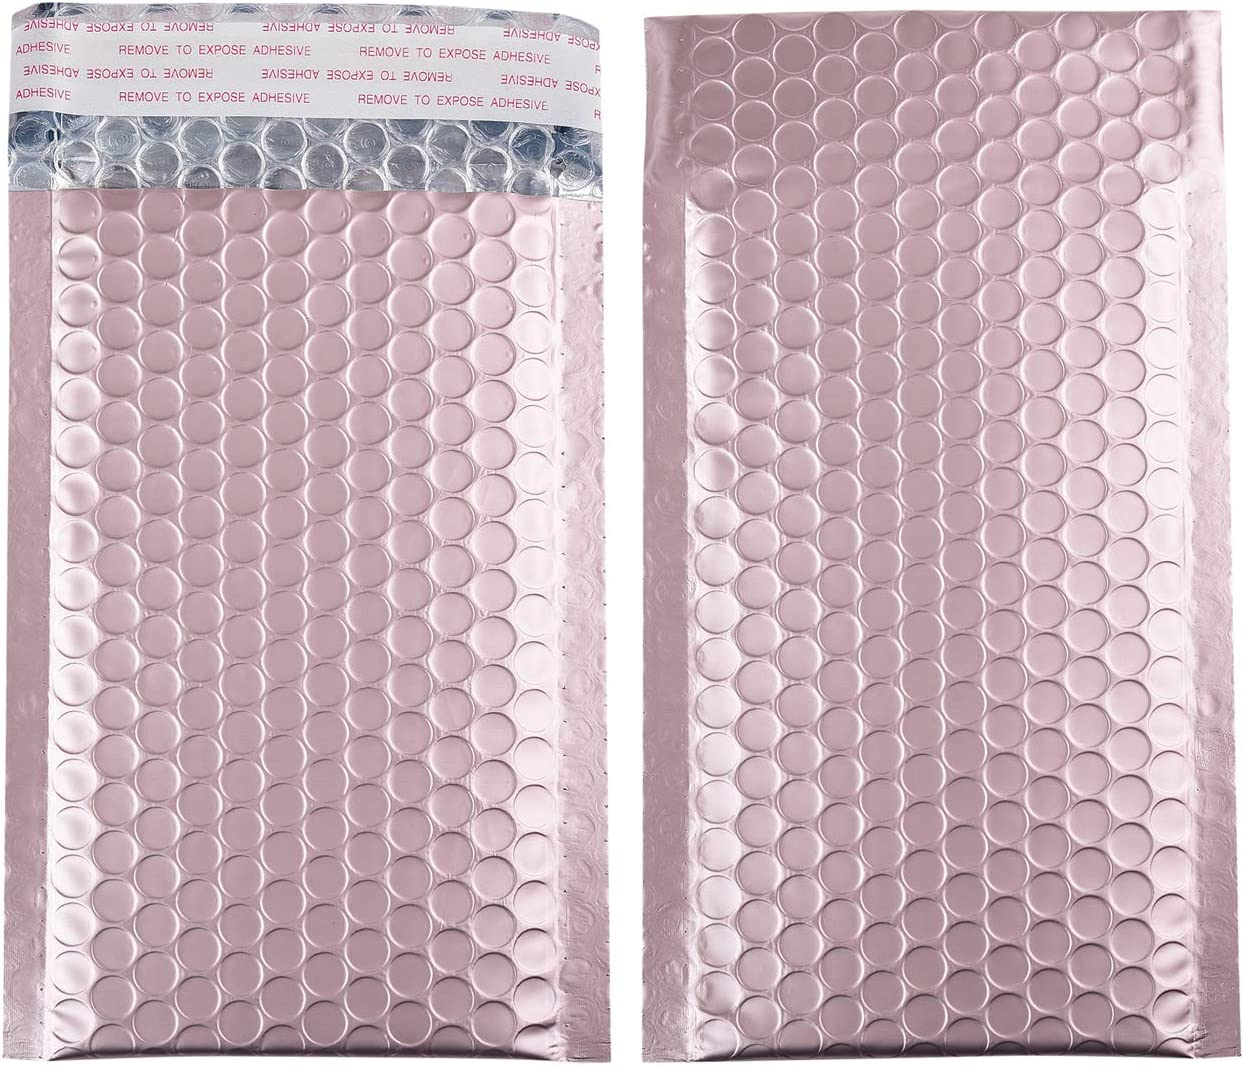 4x8 Inch Matte Max 49% OFF lowest price Metallic Bubble Mailers Lined Padded Self